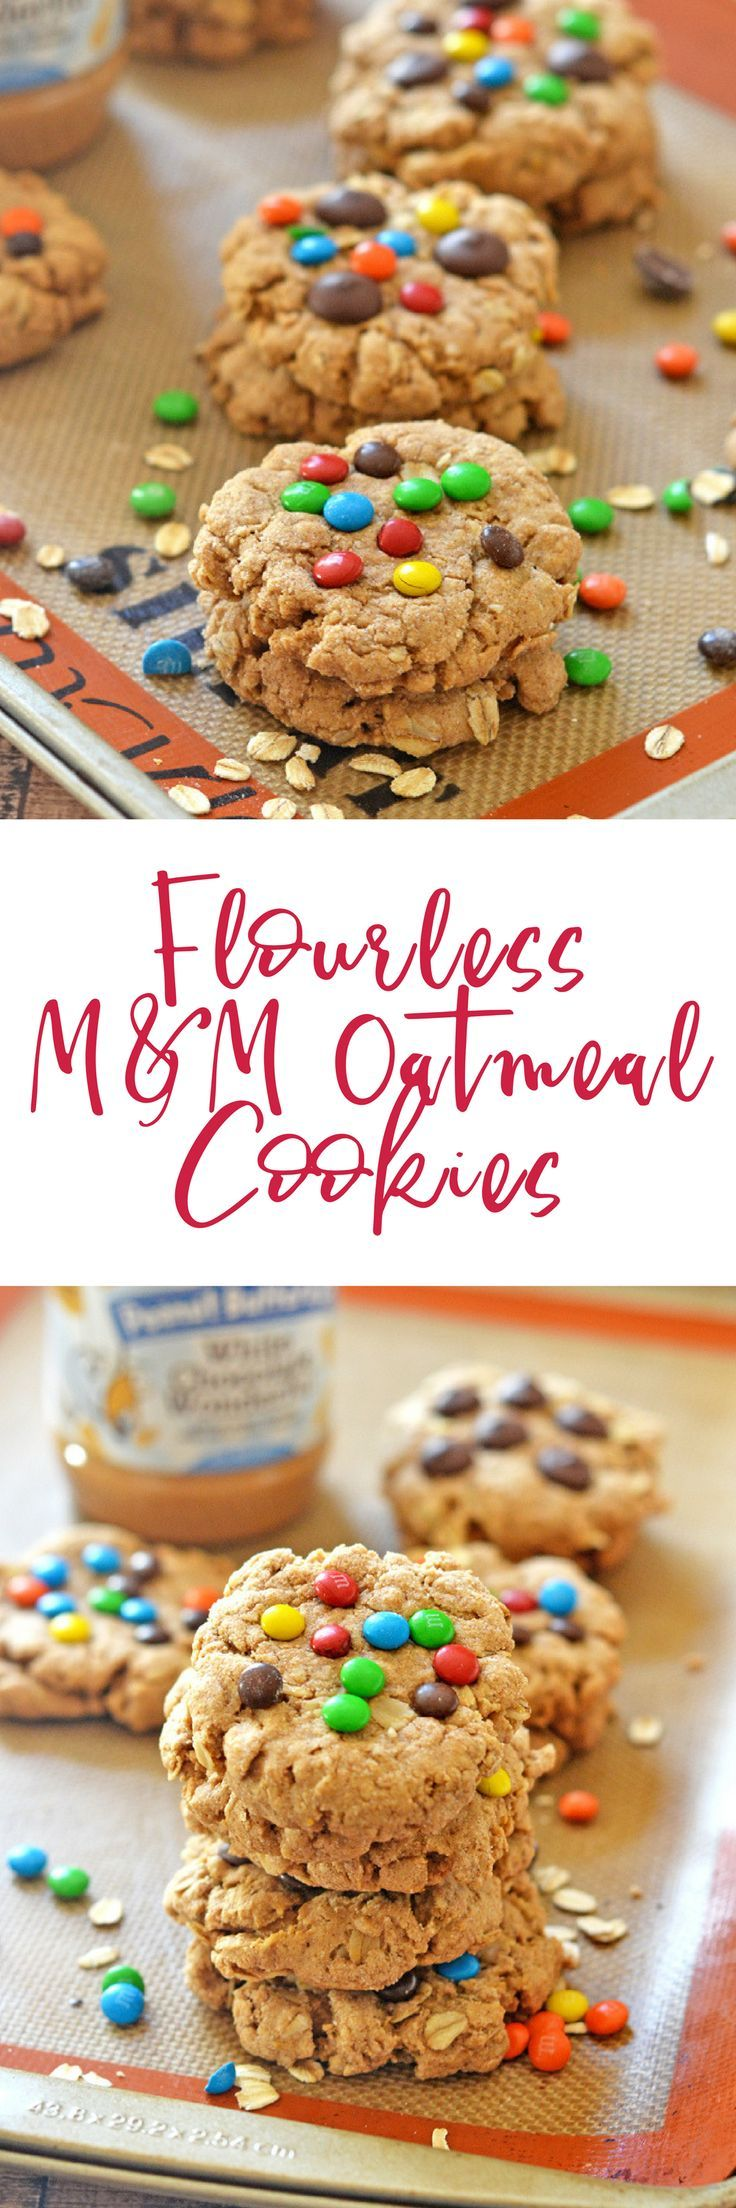 These Flourless M&M Oatmeal Cookies are perfect for packing in lunchboxes, munching on after school or work, and pack a nutritional wallop since they are packed full of oats and peanut butter. Believe me, you'd never guess these thick and chewy cookies a